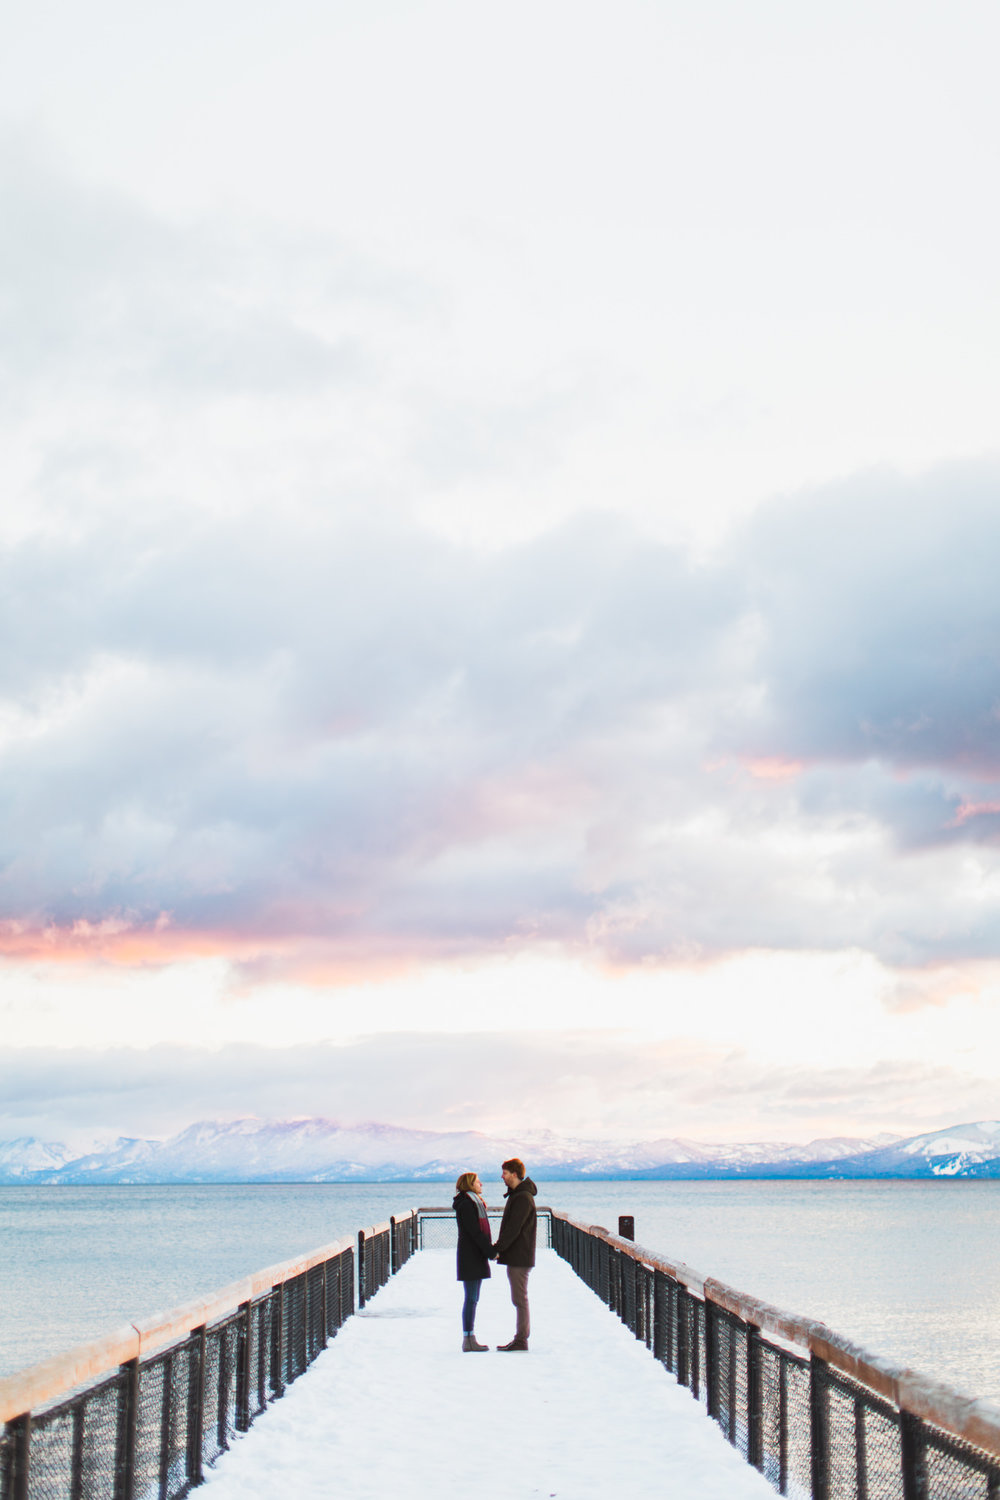 snowy engagement session on lake tahoe | destination engagement photo inspiration | utah adventure elopement photographers | the hearnes adventure photography | www.thehearnes.com